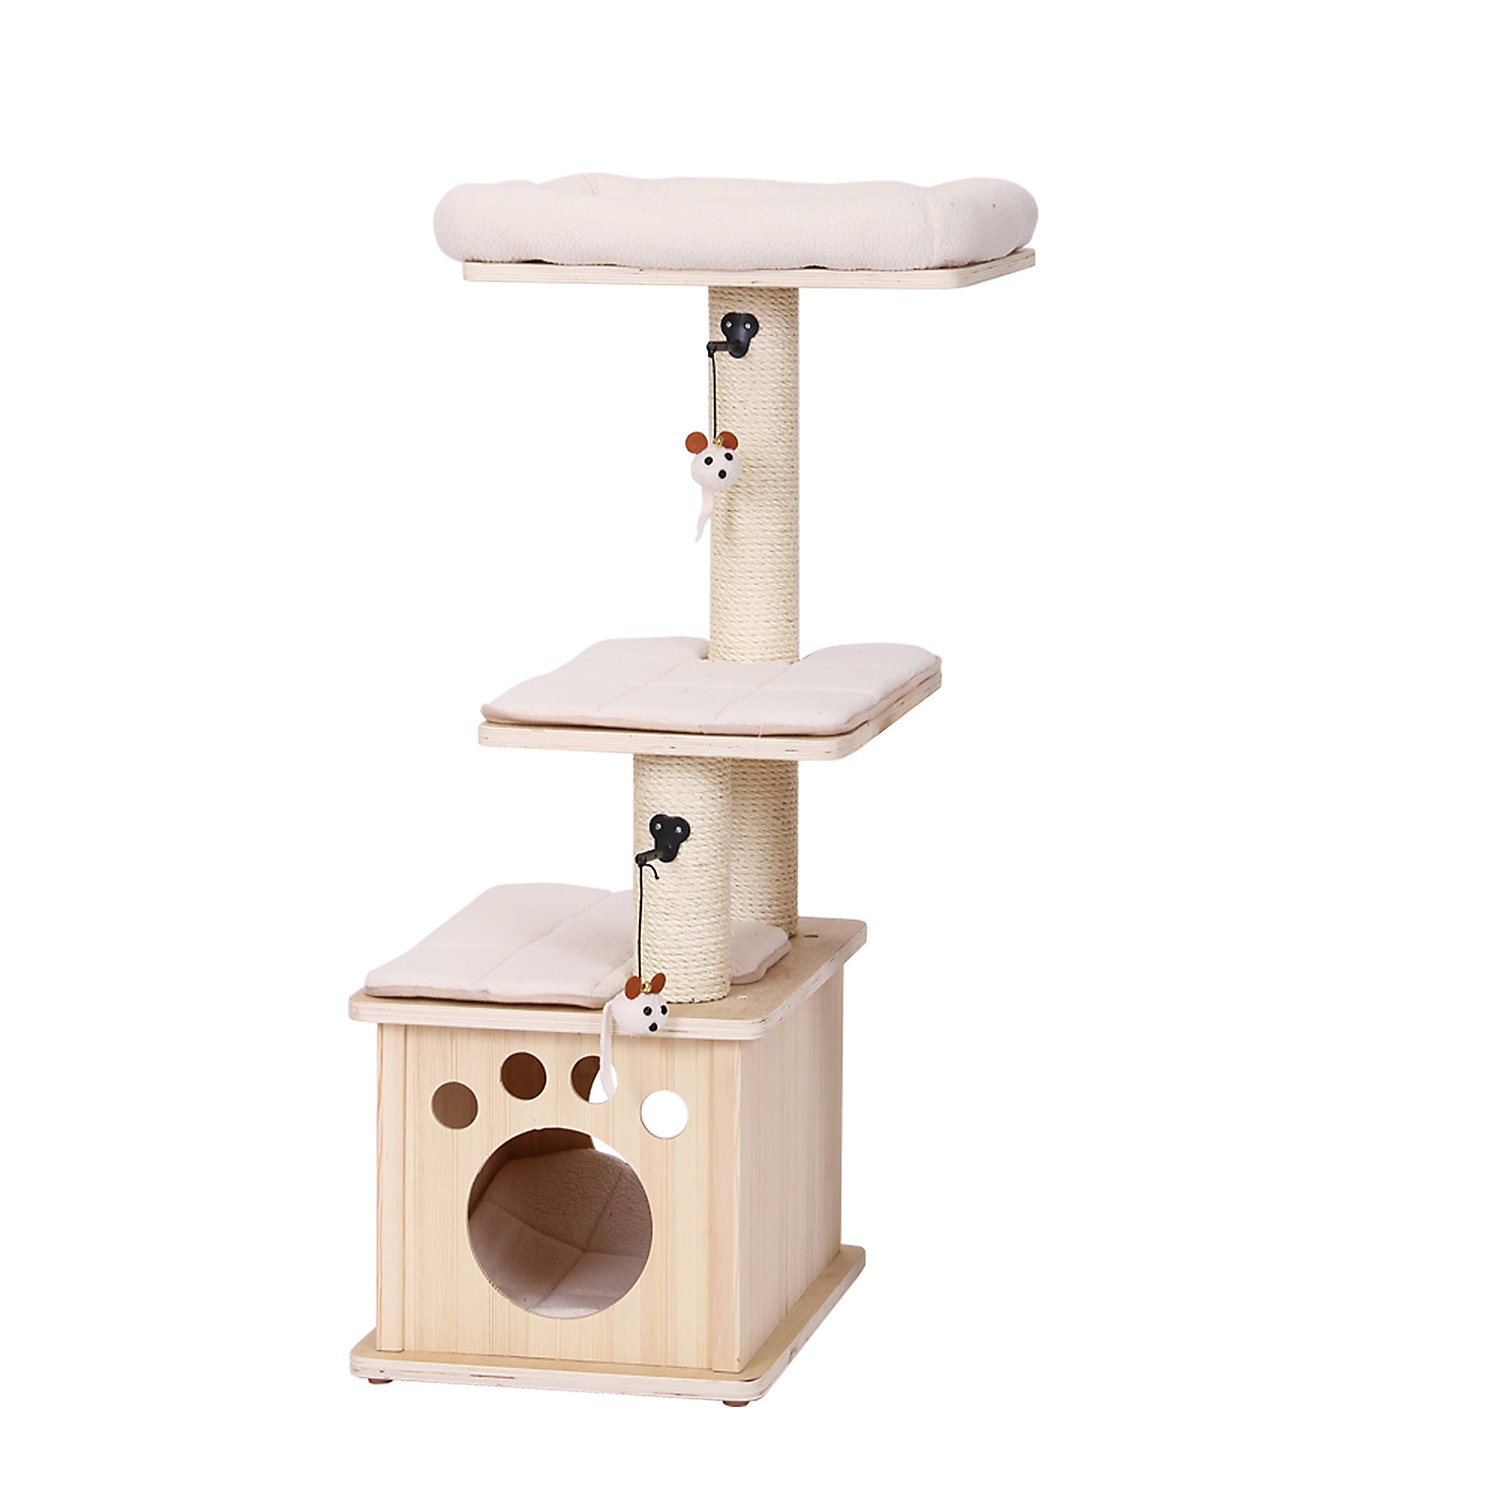 PetPals Group Aura Natural Wood Three Level Cat Tree With Condo 20 L X 16 W X 43 H 31 LB OffWhite  OffWhite